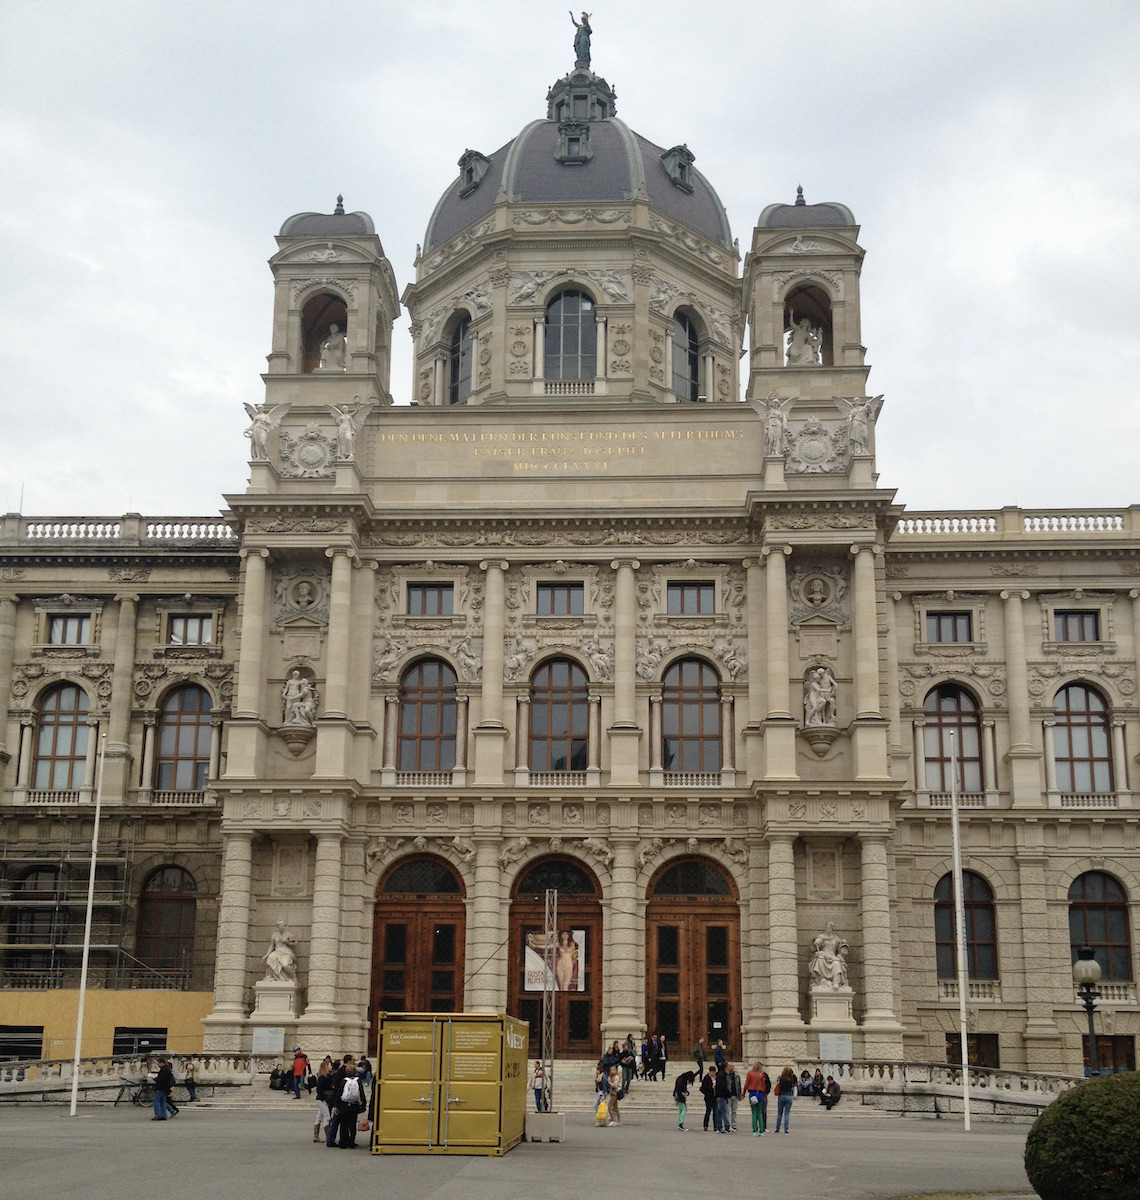 Iconic building in Vienna.